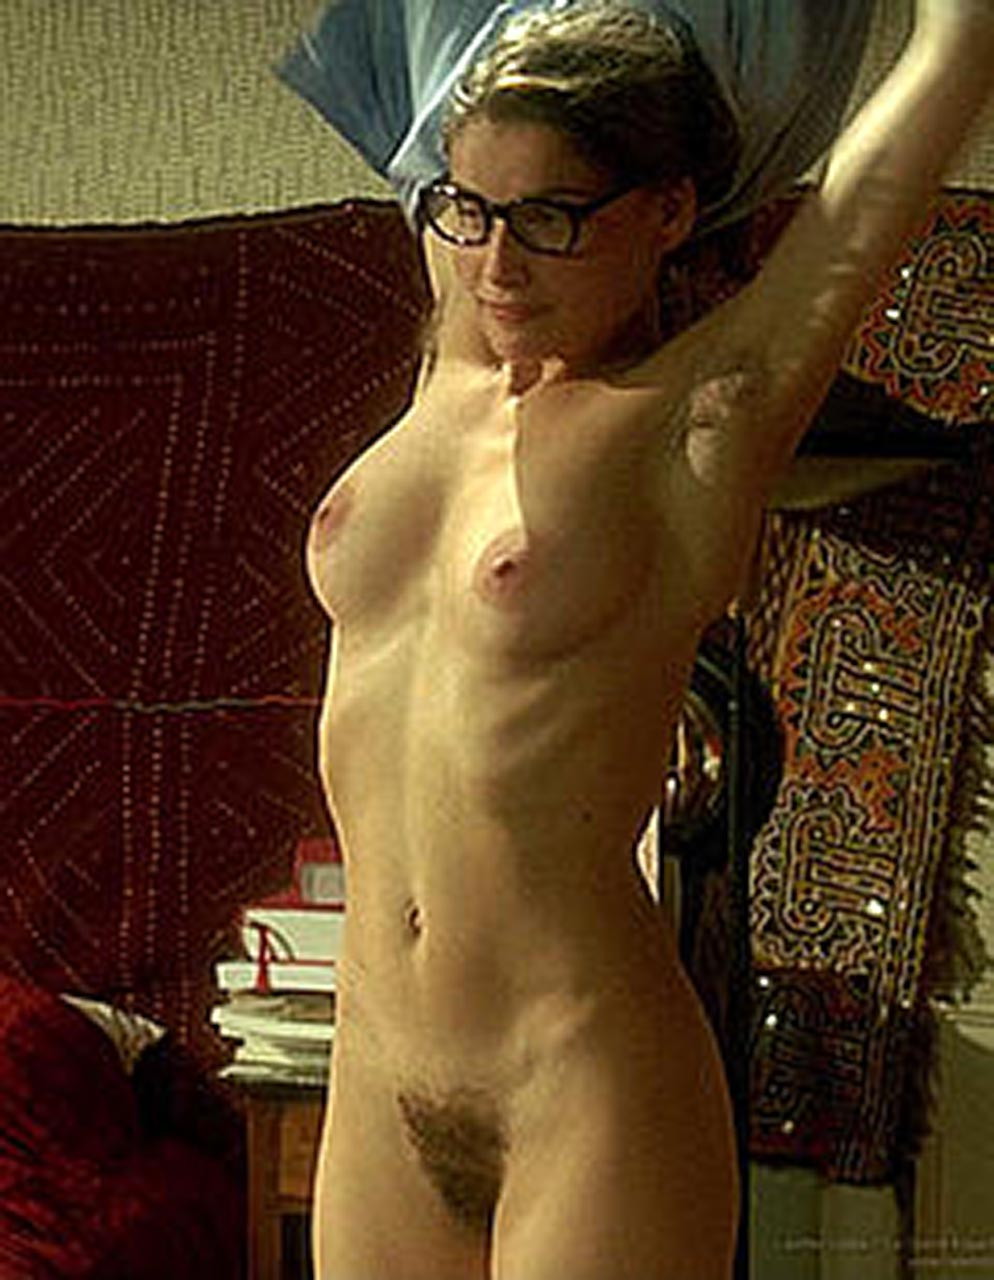 Nude photos of laetitia casta